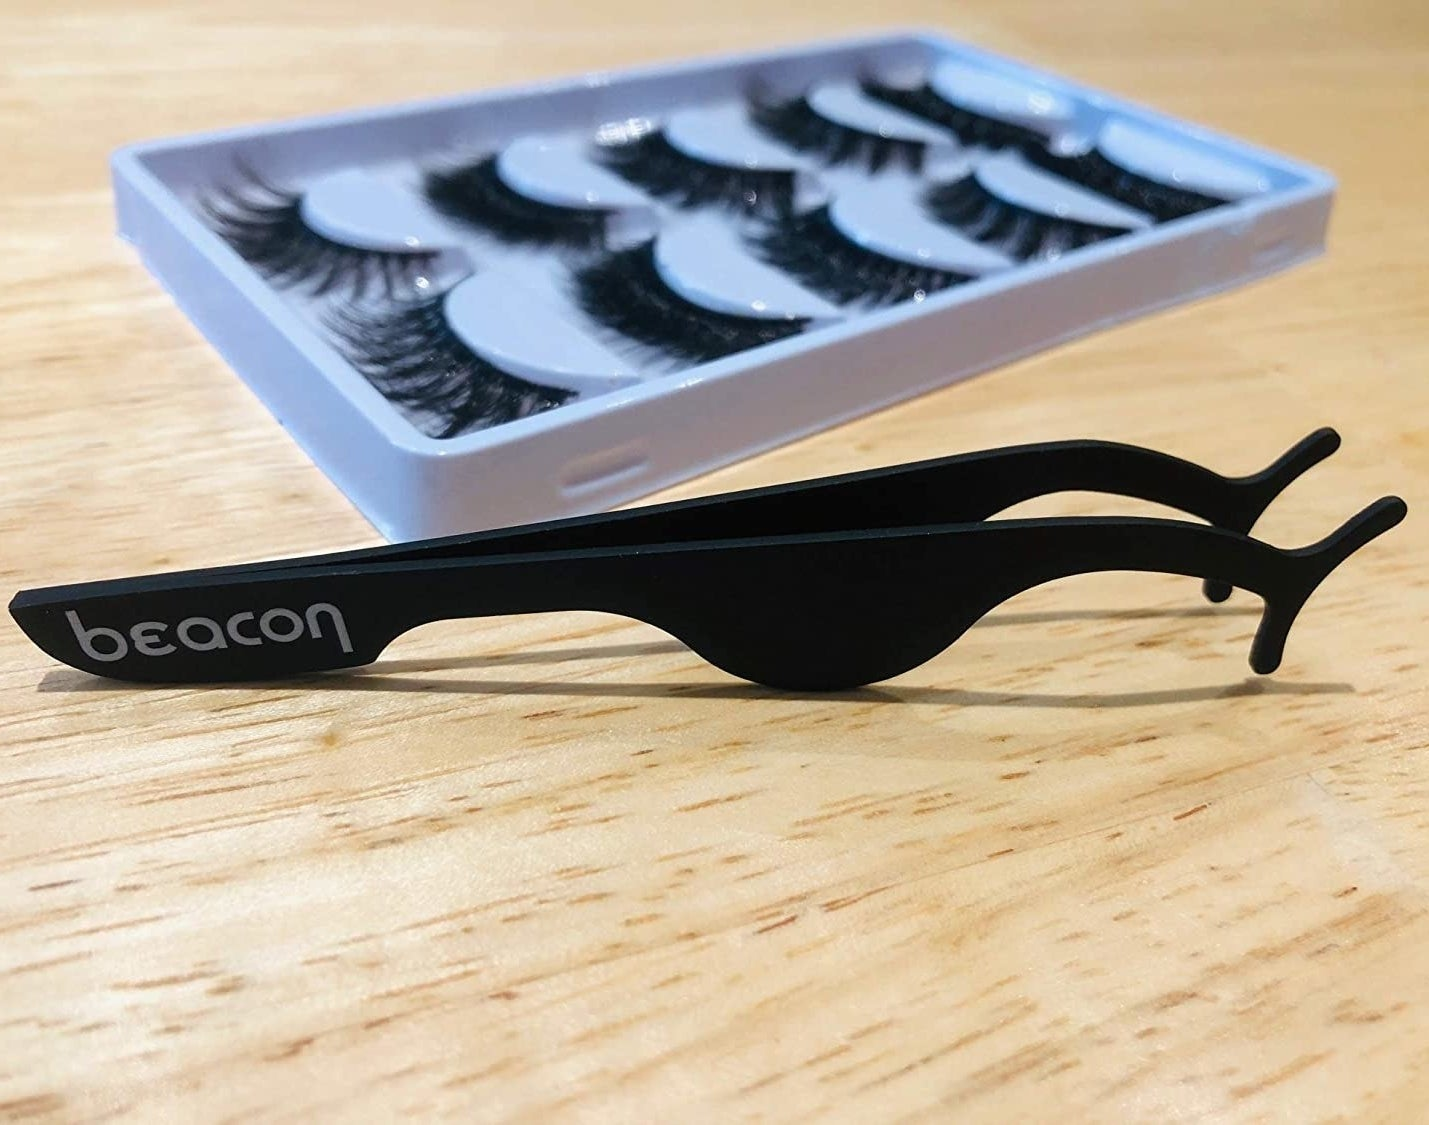 The applicator next to a box of lashes